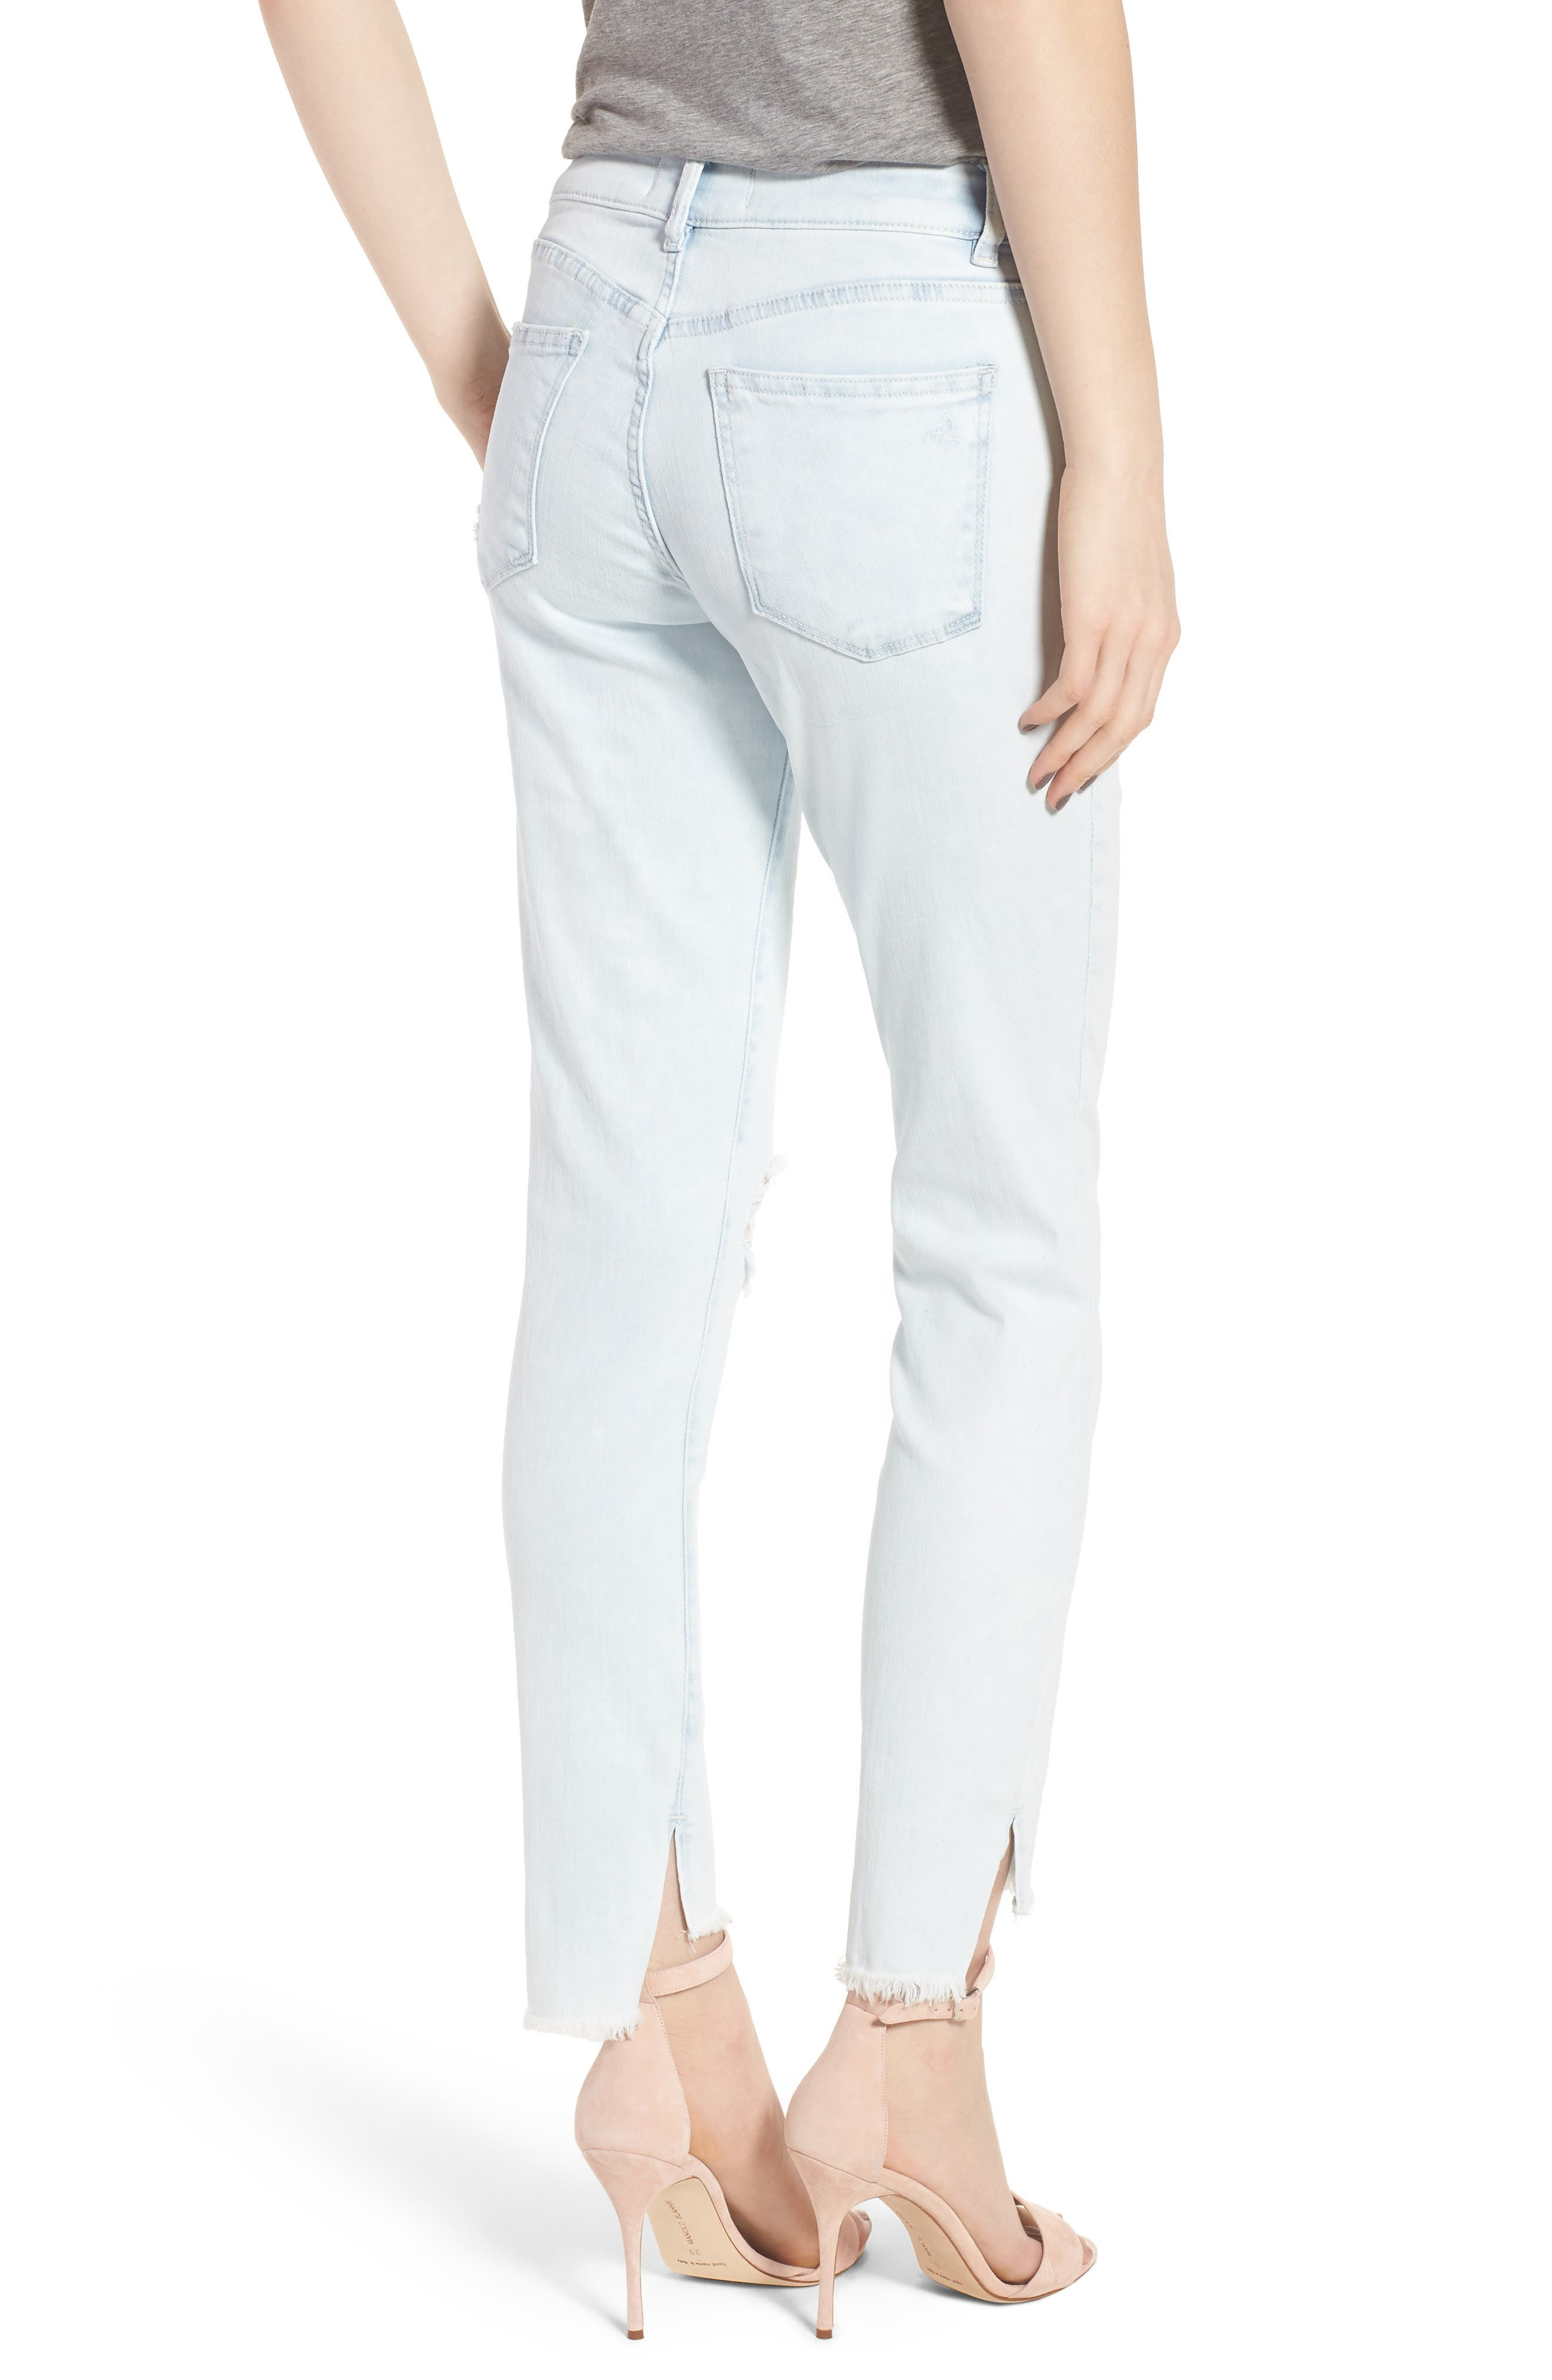 Margaux Instasculpt Ankle Skinny Jeans,                             Alternate thumbnail 2, color,                             Kodak